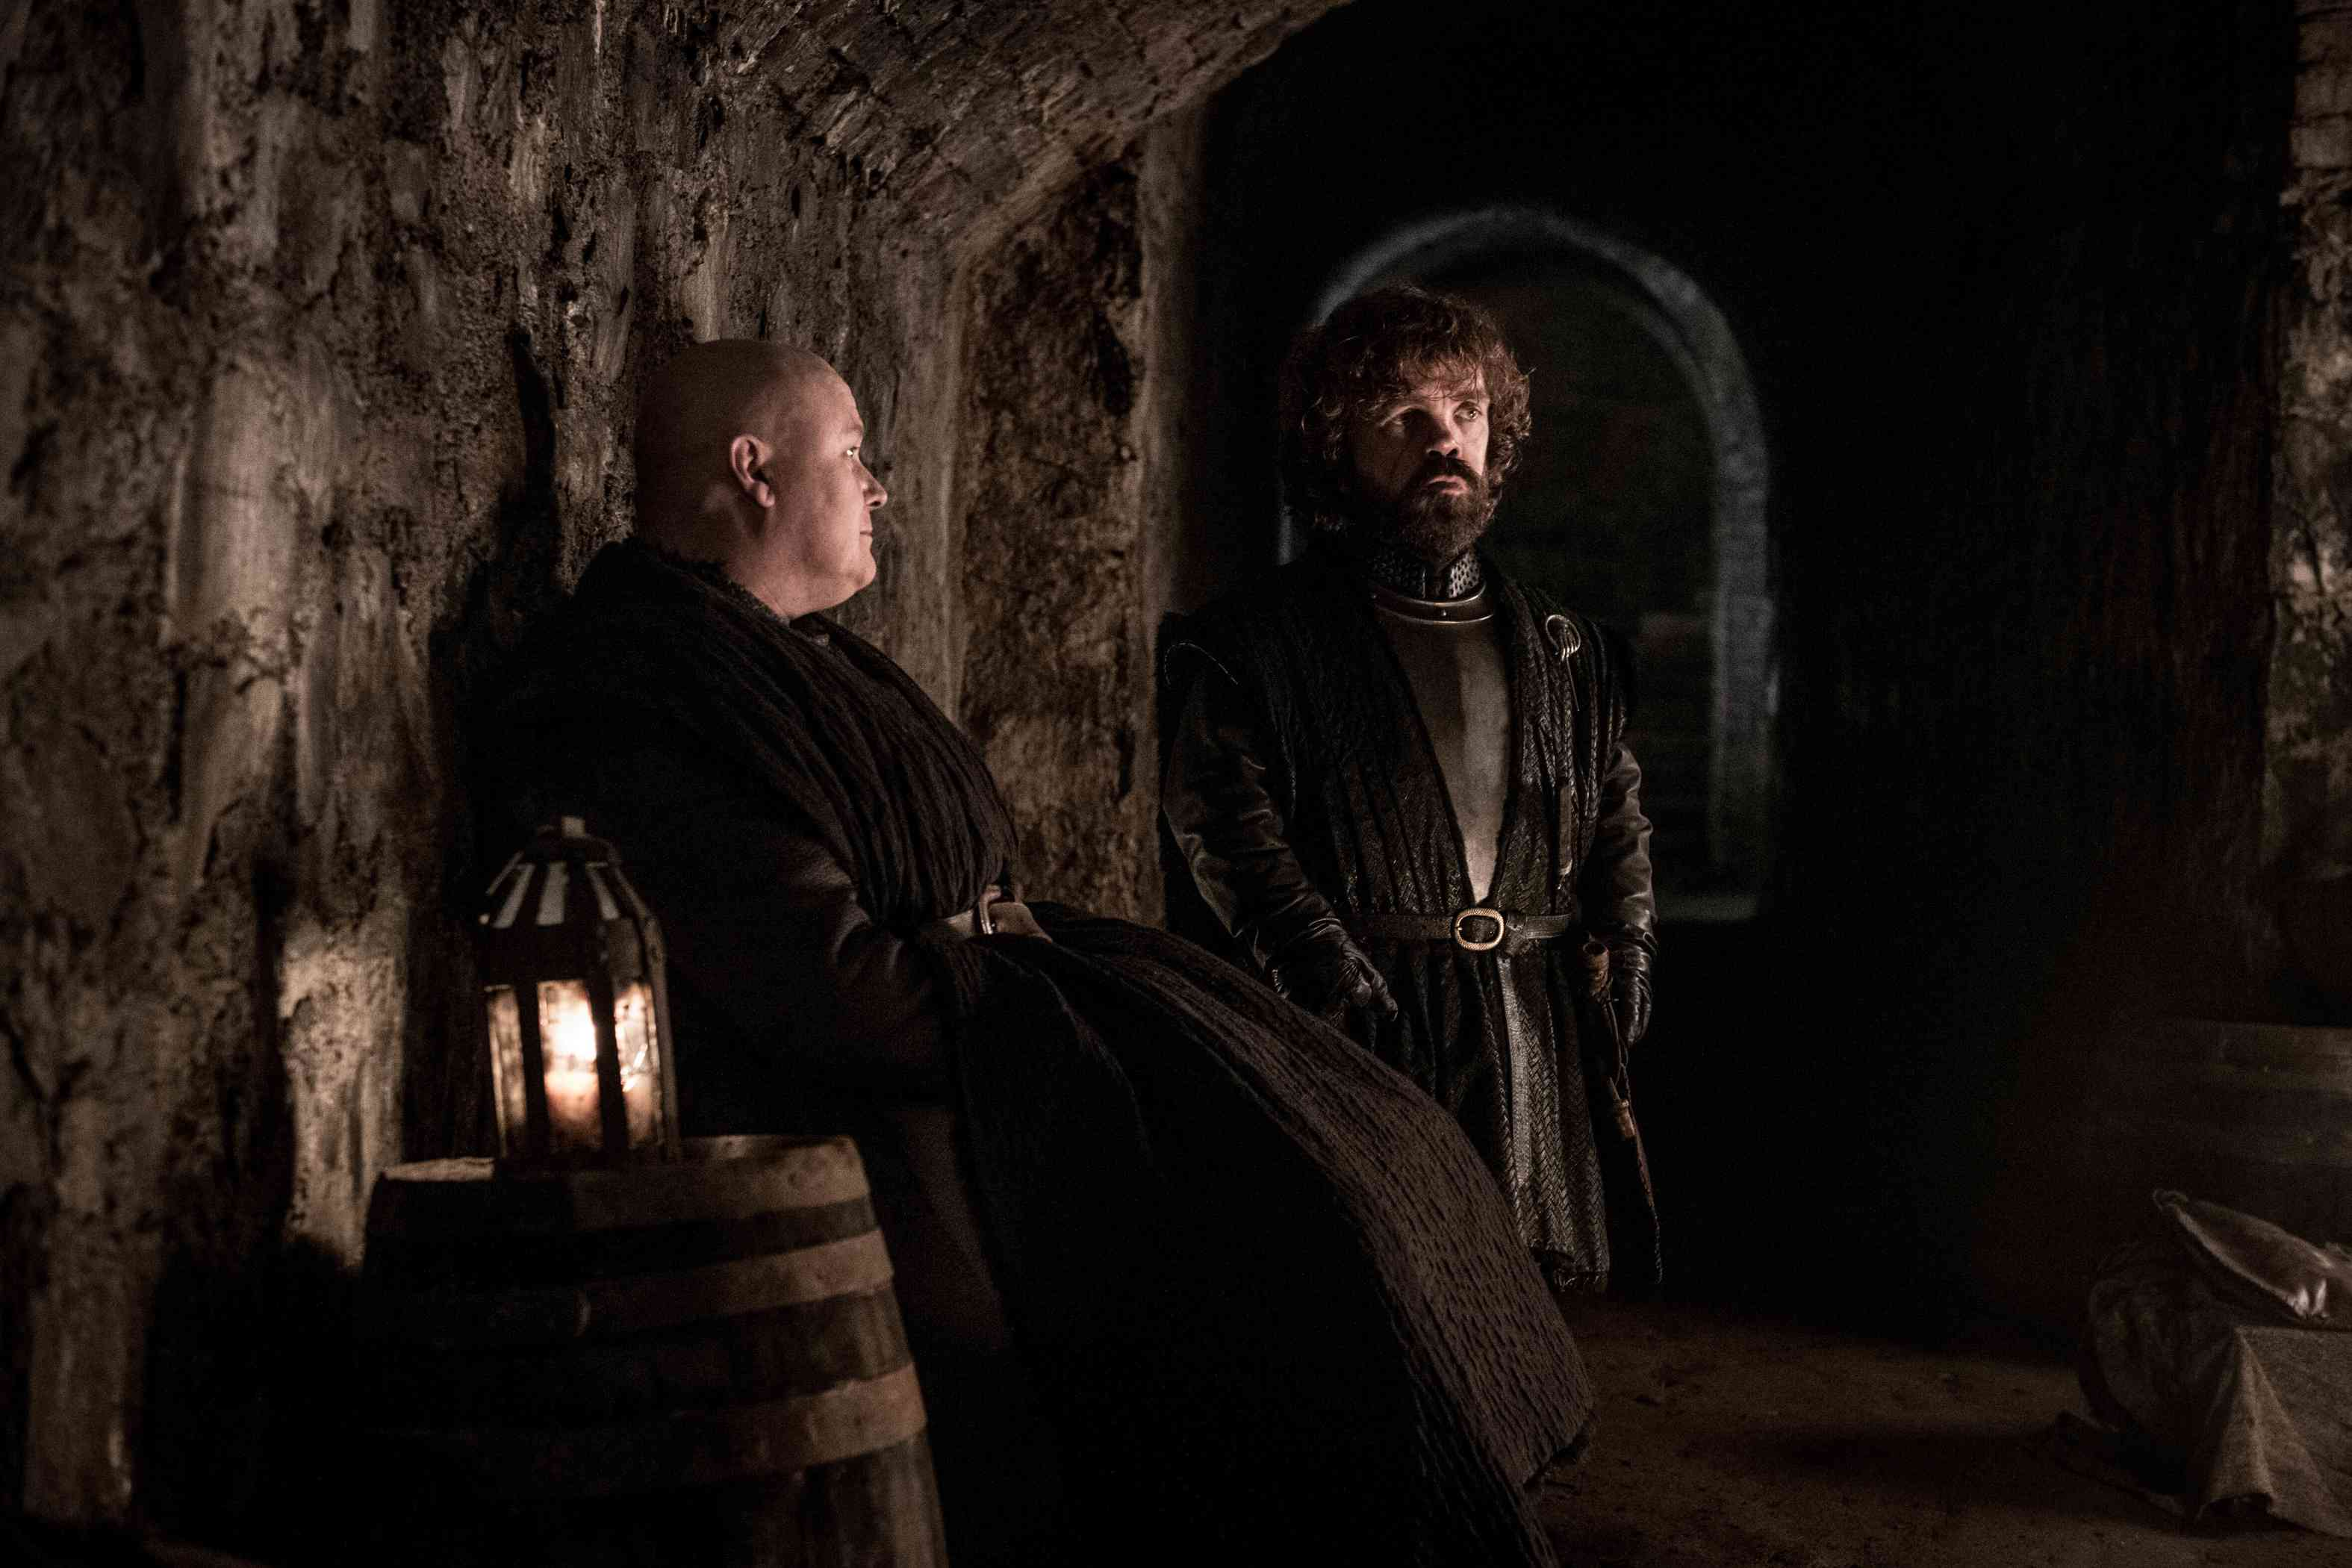 Conleth Hill and Peter Dinklage as Lord Varys and Tyrion Lannister. Courtesy HBO.